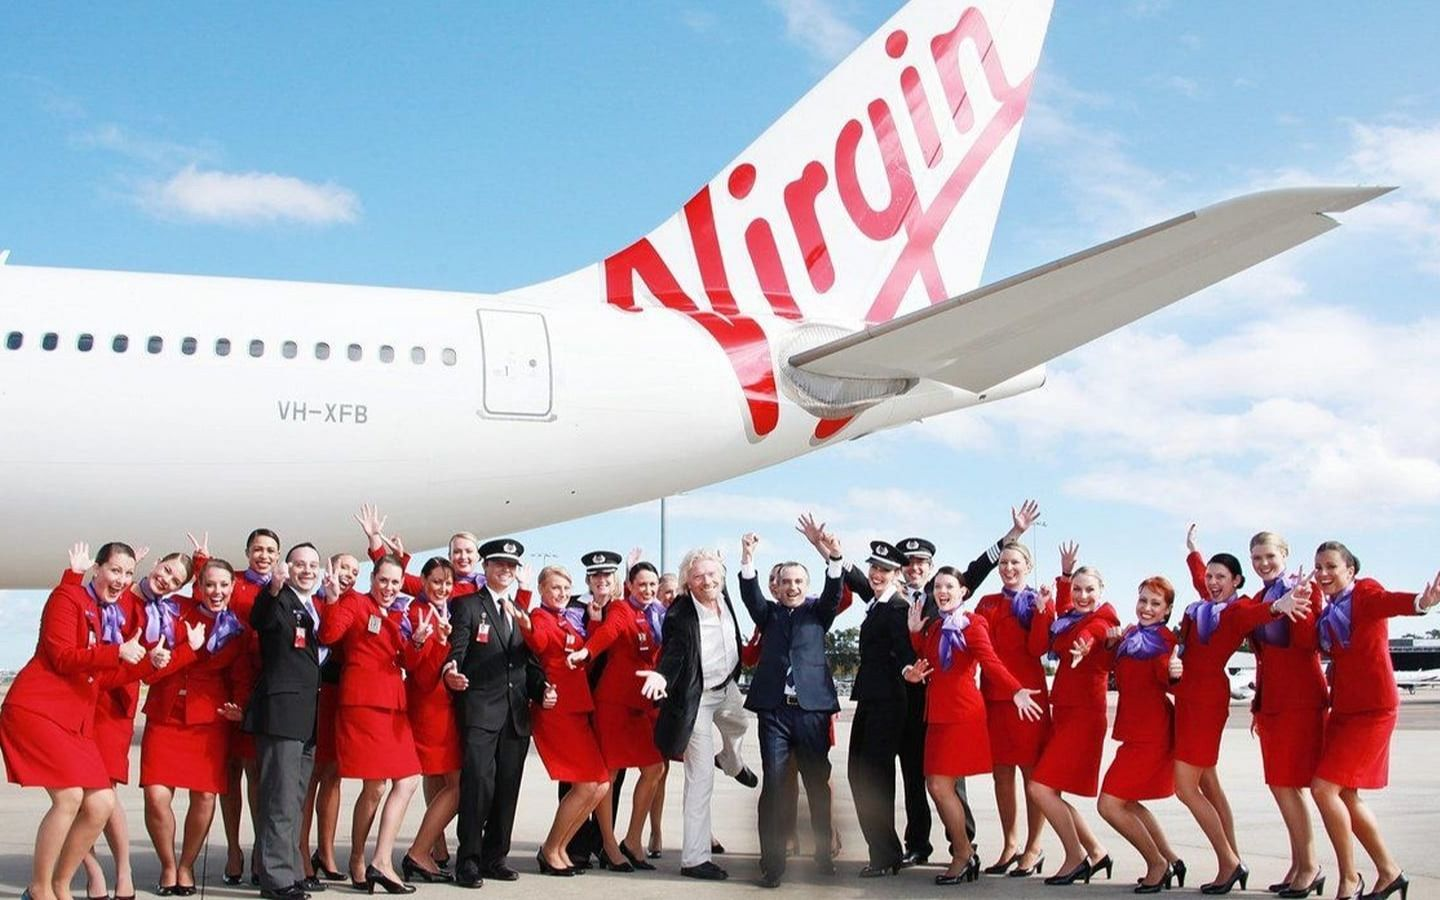 Richard Branson, Virgin Australia cabin crew and pilots stand with their arms in the air, smiling, in front of a Virgin Australia plane